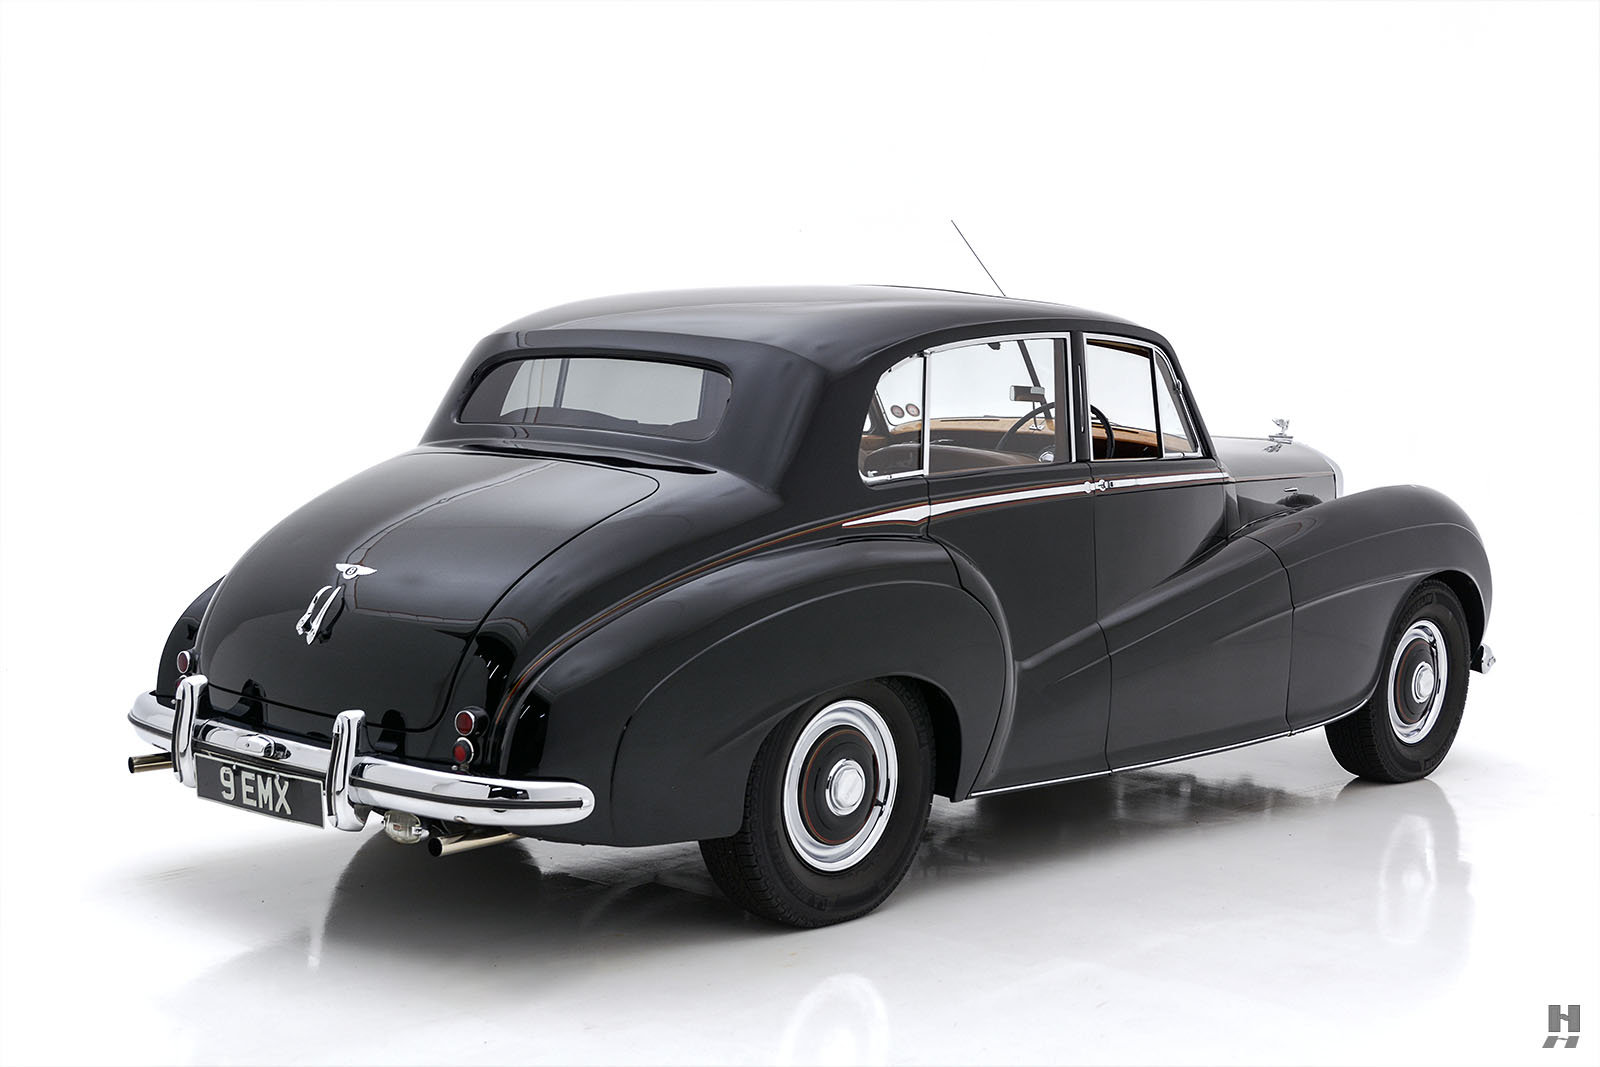 1951 BENTLEY MARK VI MULLINER LIGHTWEIGHT SPORTS SALOON For Sale (picture 5 of 6)